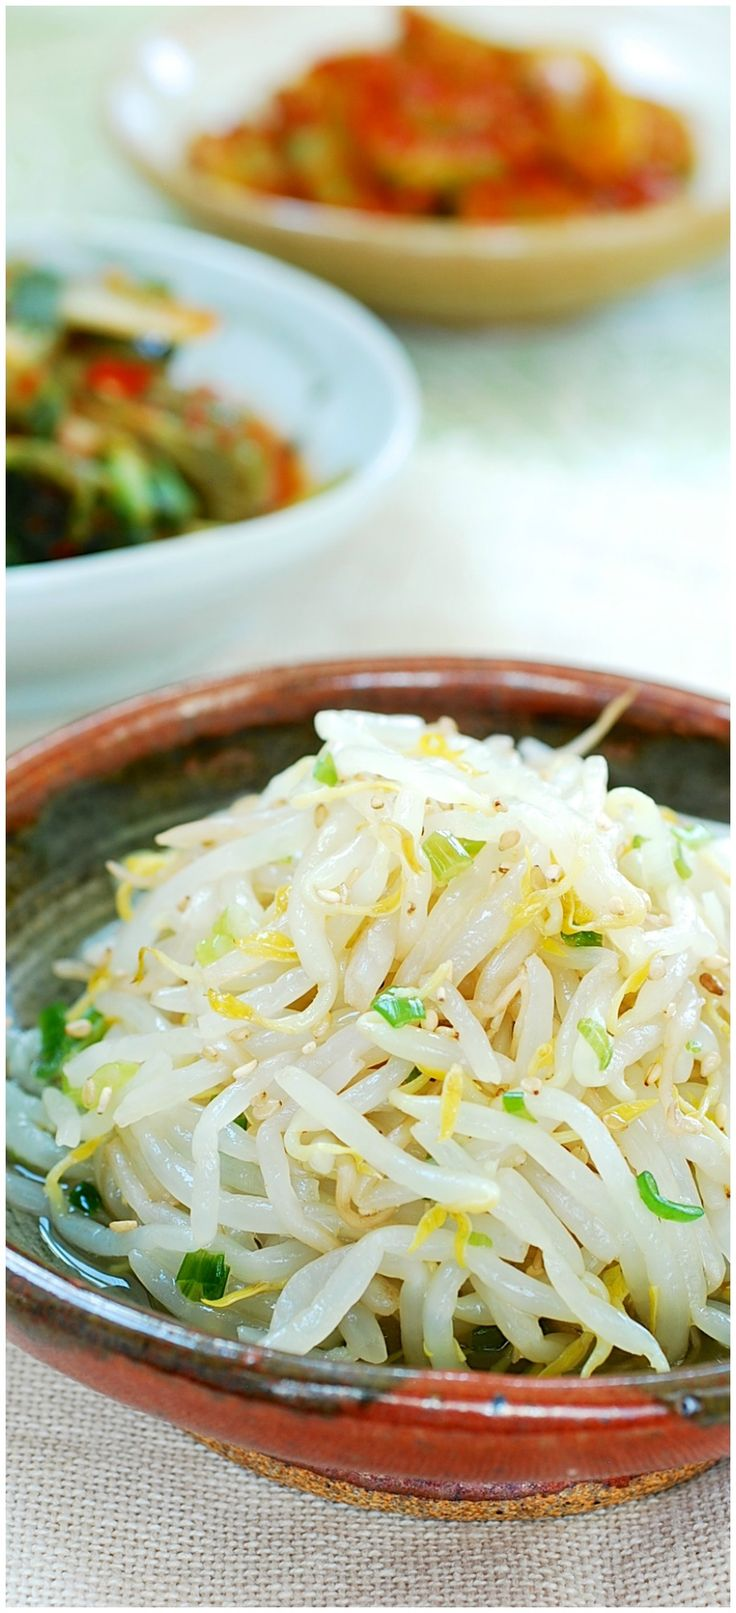 A simple Korean side dish made with bean sprouts! Great in bibimbap too!